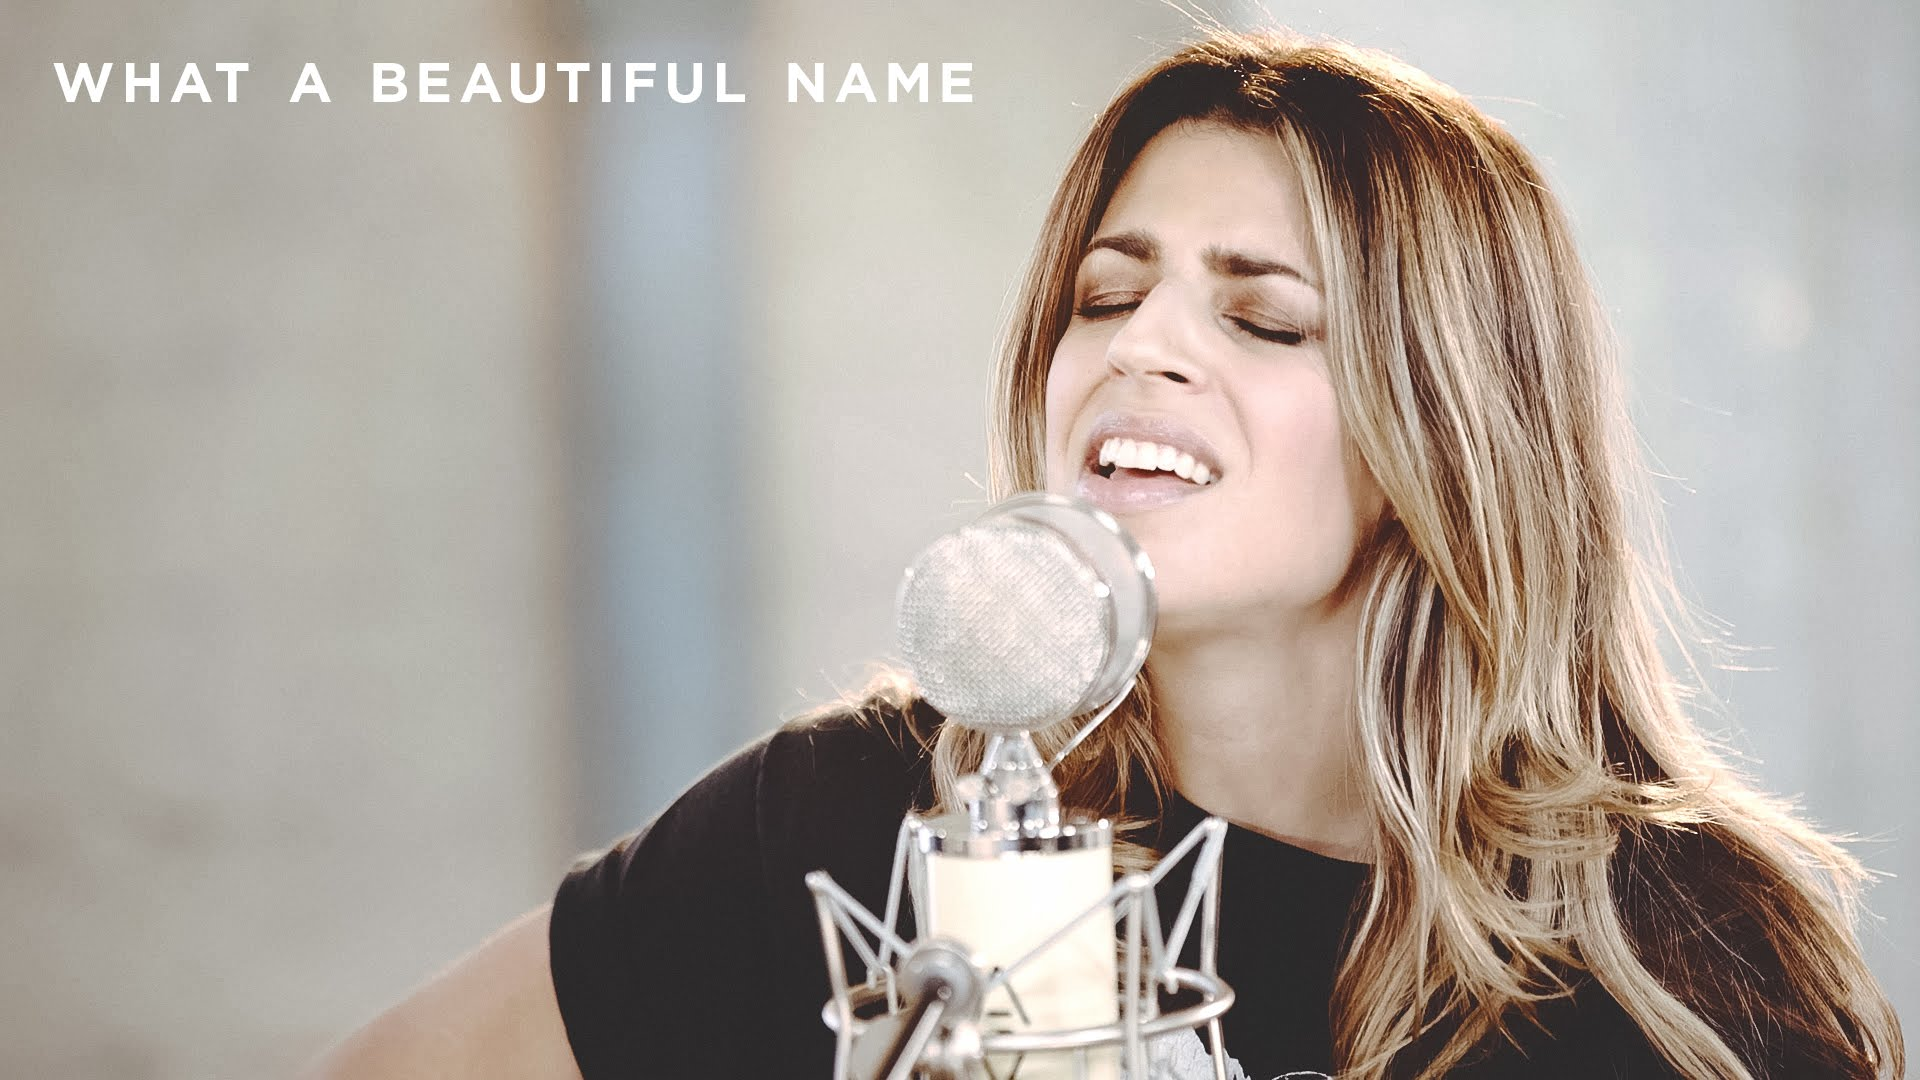 California Snow Day likewise Sixpence None The Richer 28906 together with Dick Van Dyke as well Brooke Fraser Hillsong Worship Return With New Music Video besides File KIIS 1065 logo. on the mix radio station